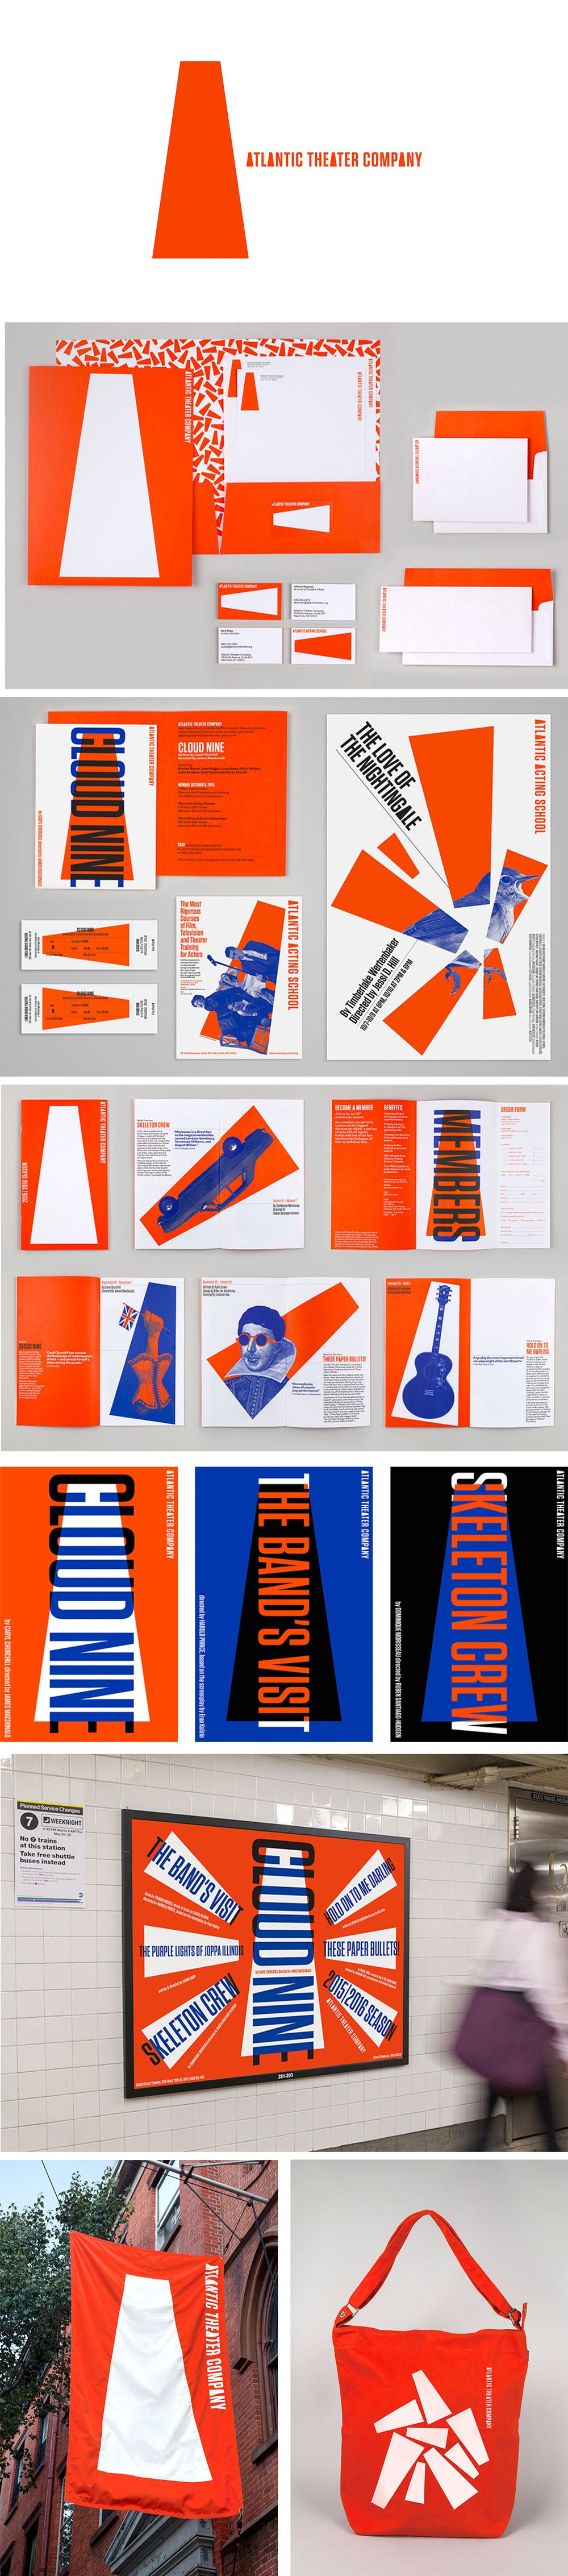 Pinned from https://pinterest.com/rothenhaeusler/best-of-corporate-design/ · Client: Atlantic Theater Company · Agency: Pentagram. Bold, energetic style through a limited colour scheme of fluro orange, blue and black. Use of flat shapes and imagery across all forms of identity, branding